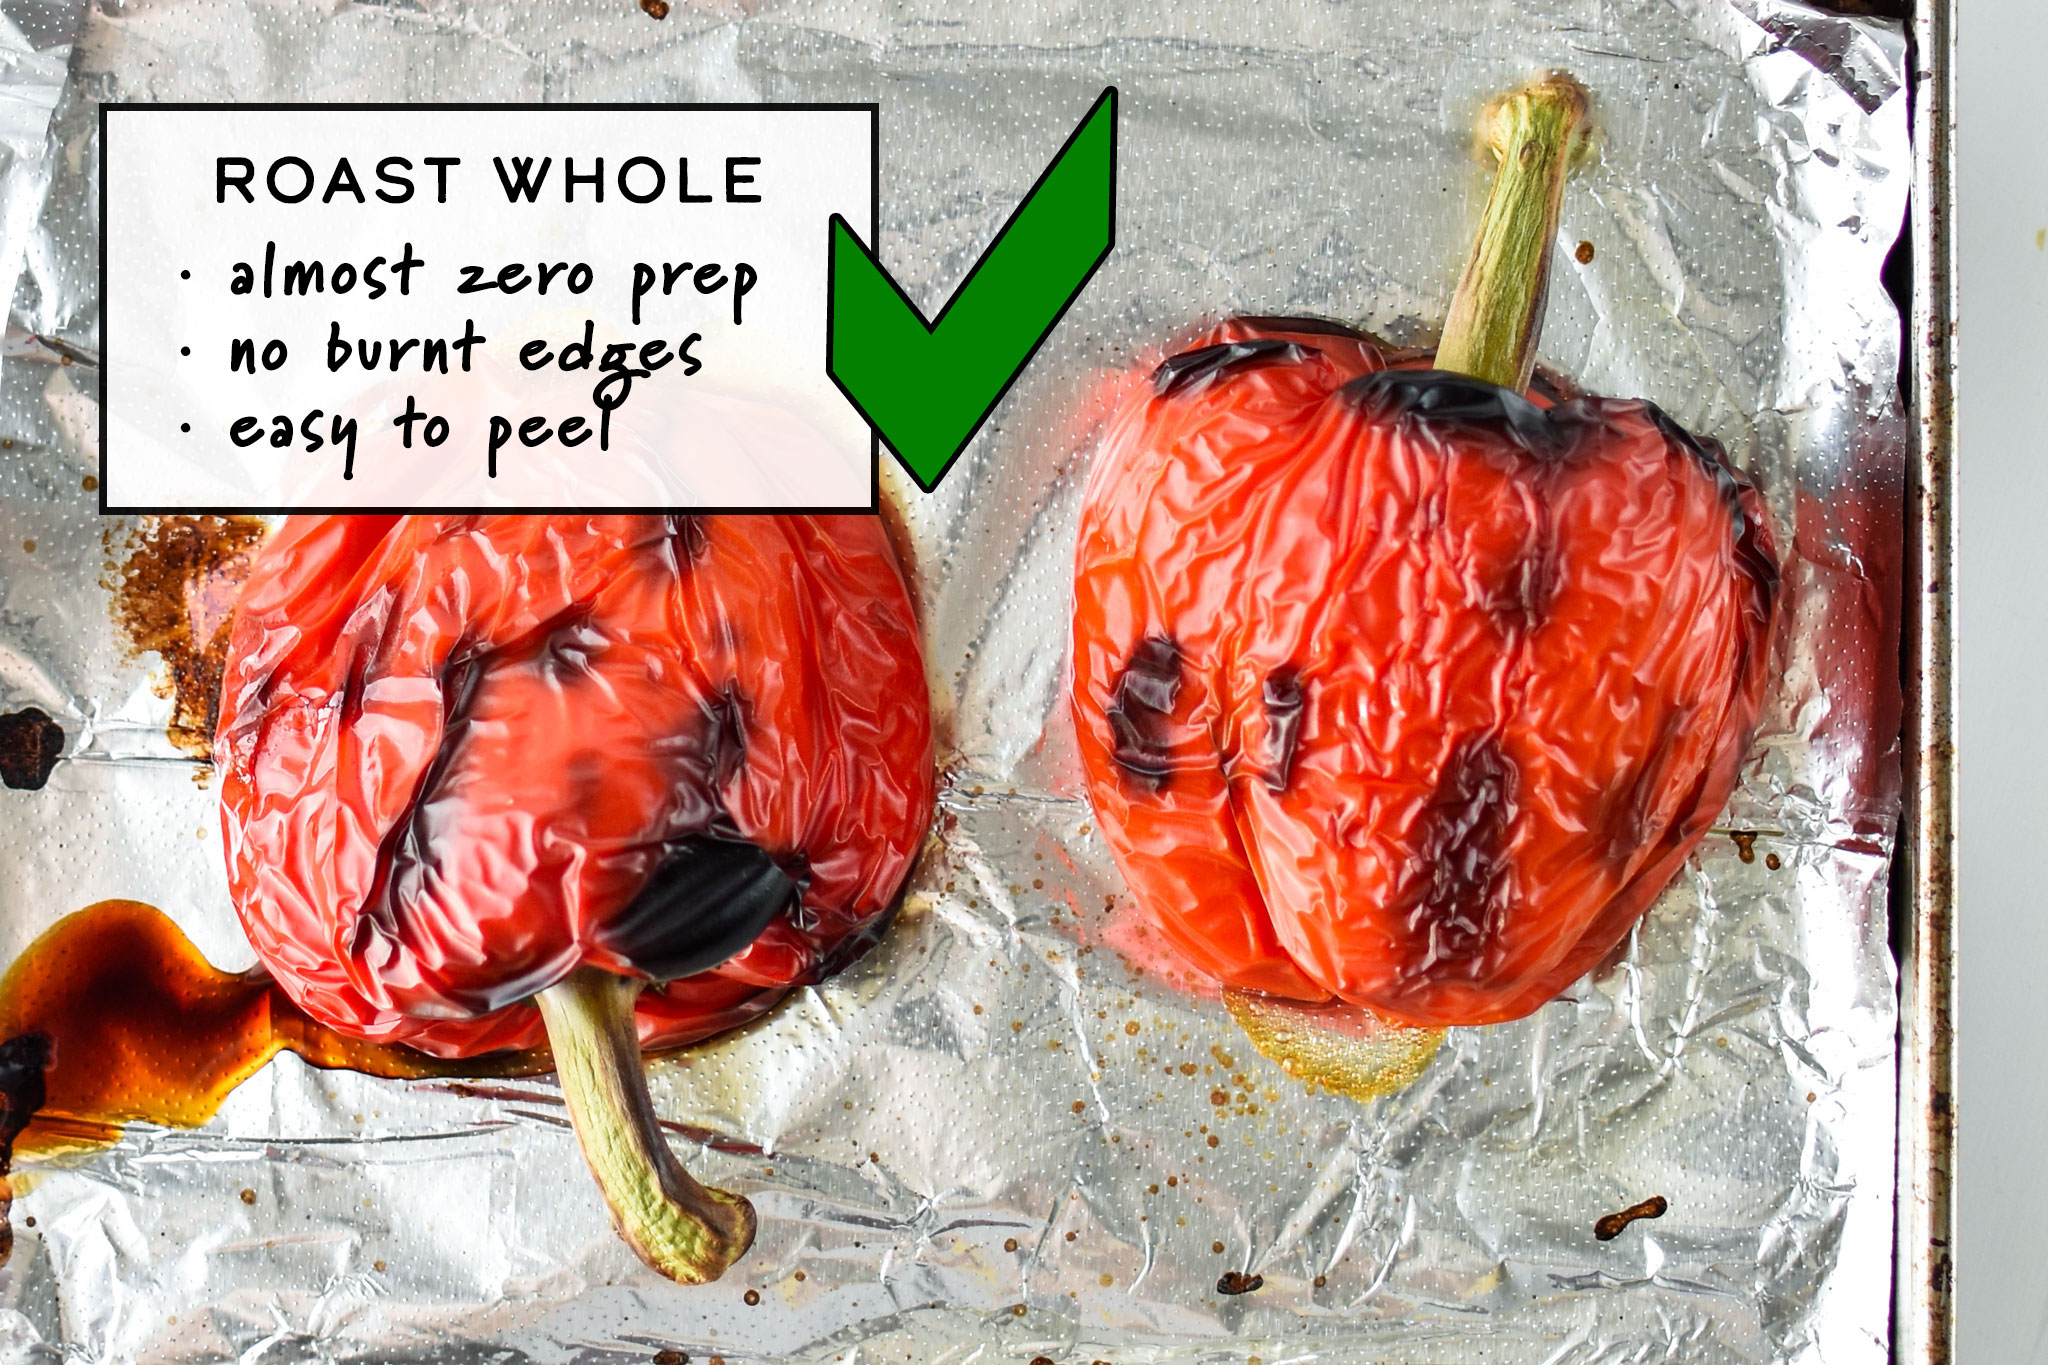 Do roast peppers whole - zero prep, no burnt edges, easy to peel